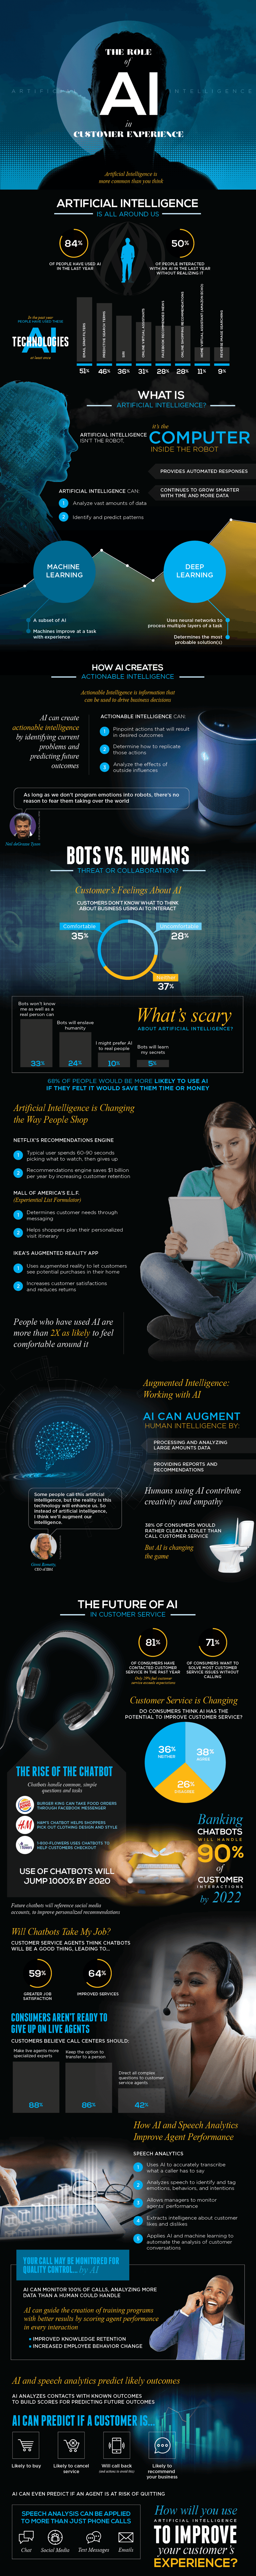 Infographic AI in customer experience